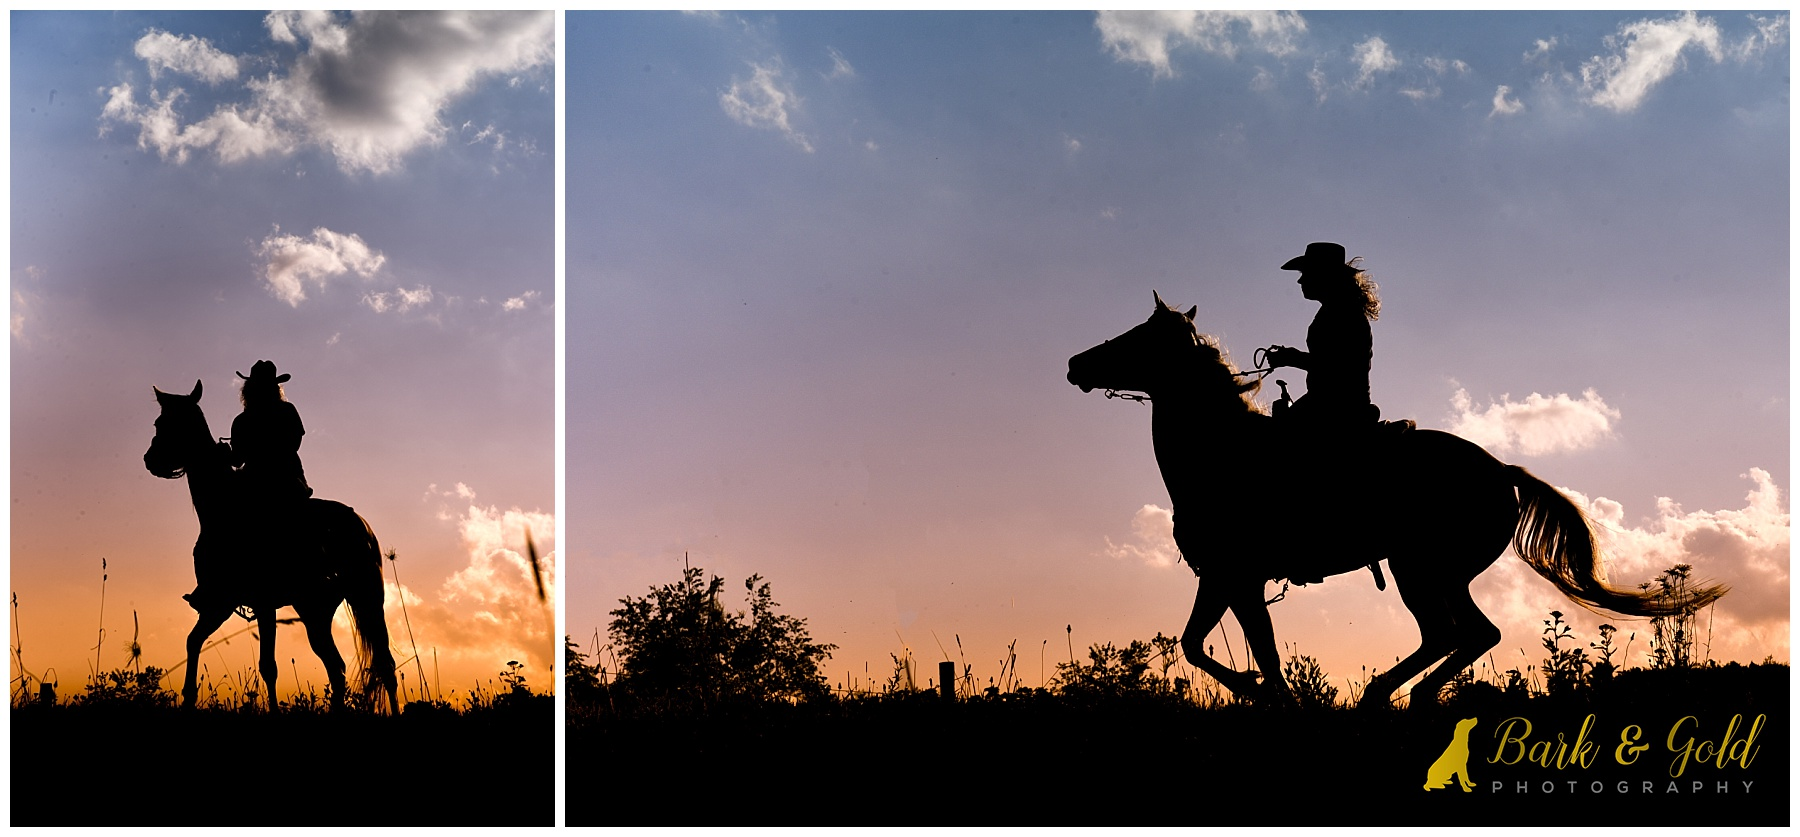 silhouette of a running horse with rider against a sunset sky